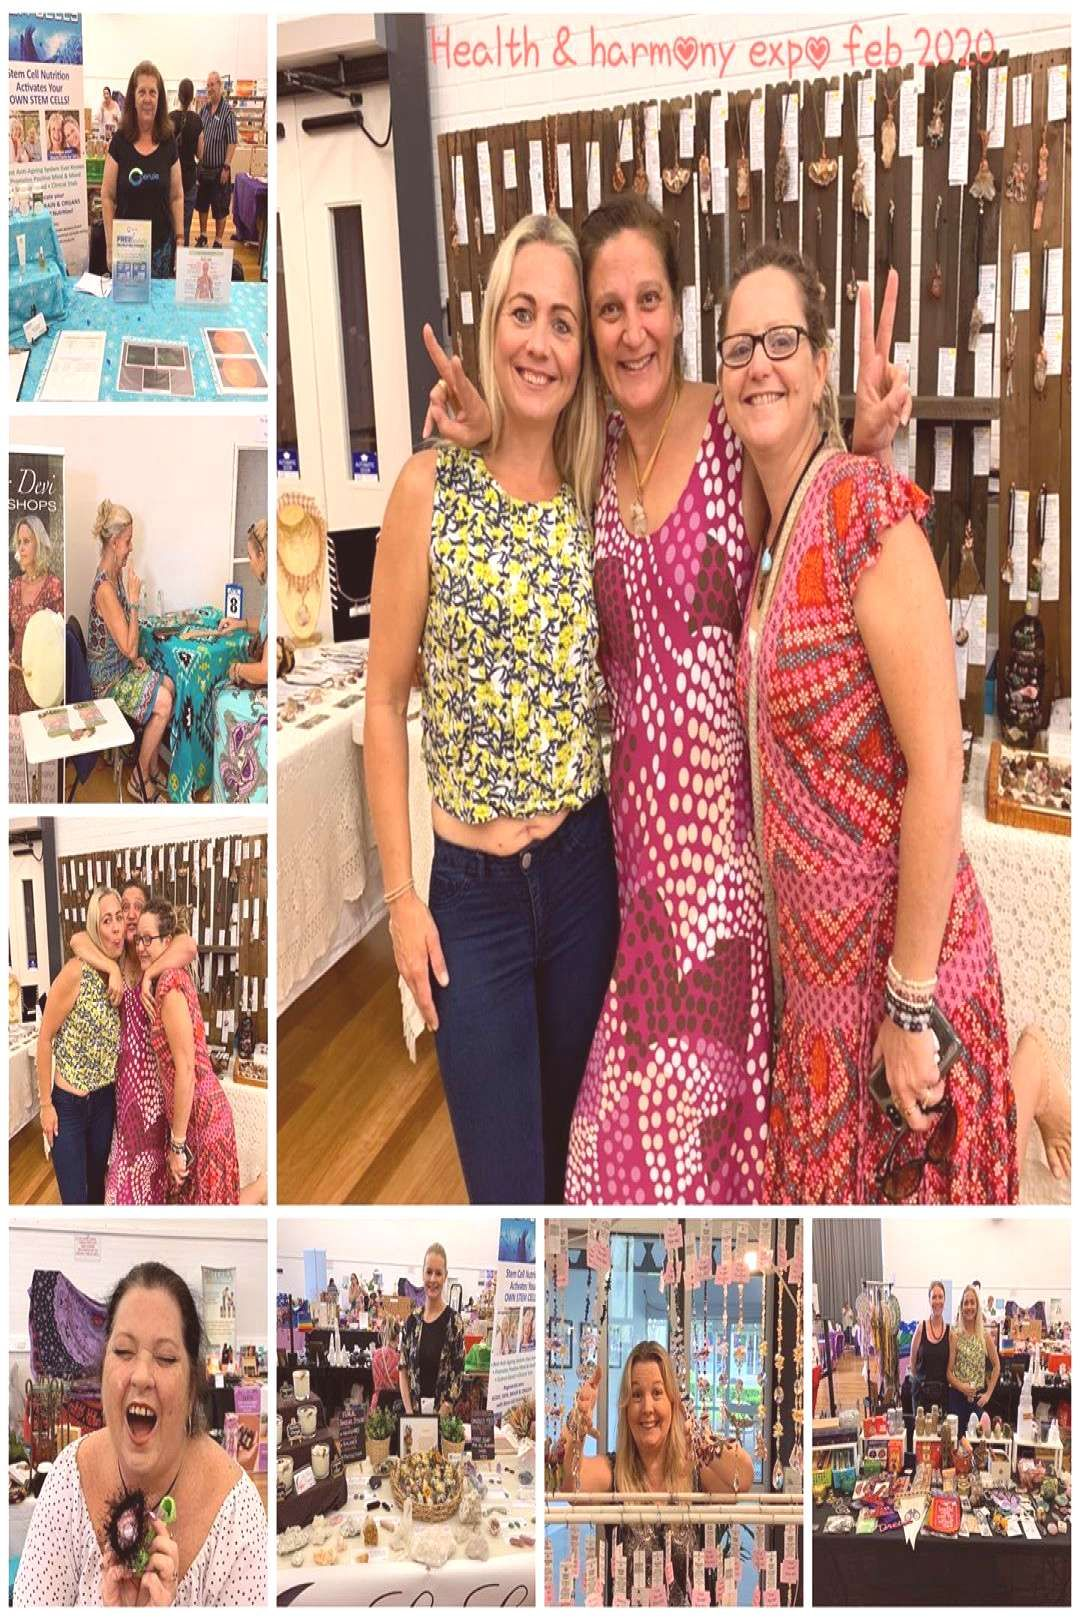 #peoplepeople #memorial #standing #harmony #health #today #expo #from #94pm #the #hal #is #at #in #9 is at the Health harmony expo today from 94pm in the memorial halYou can find Boho fashion and more on our webs...